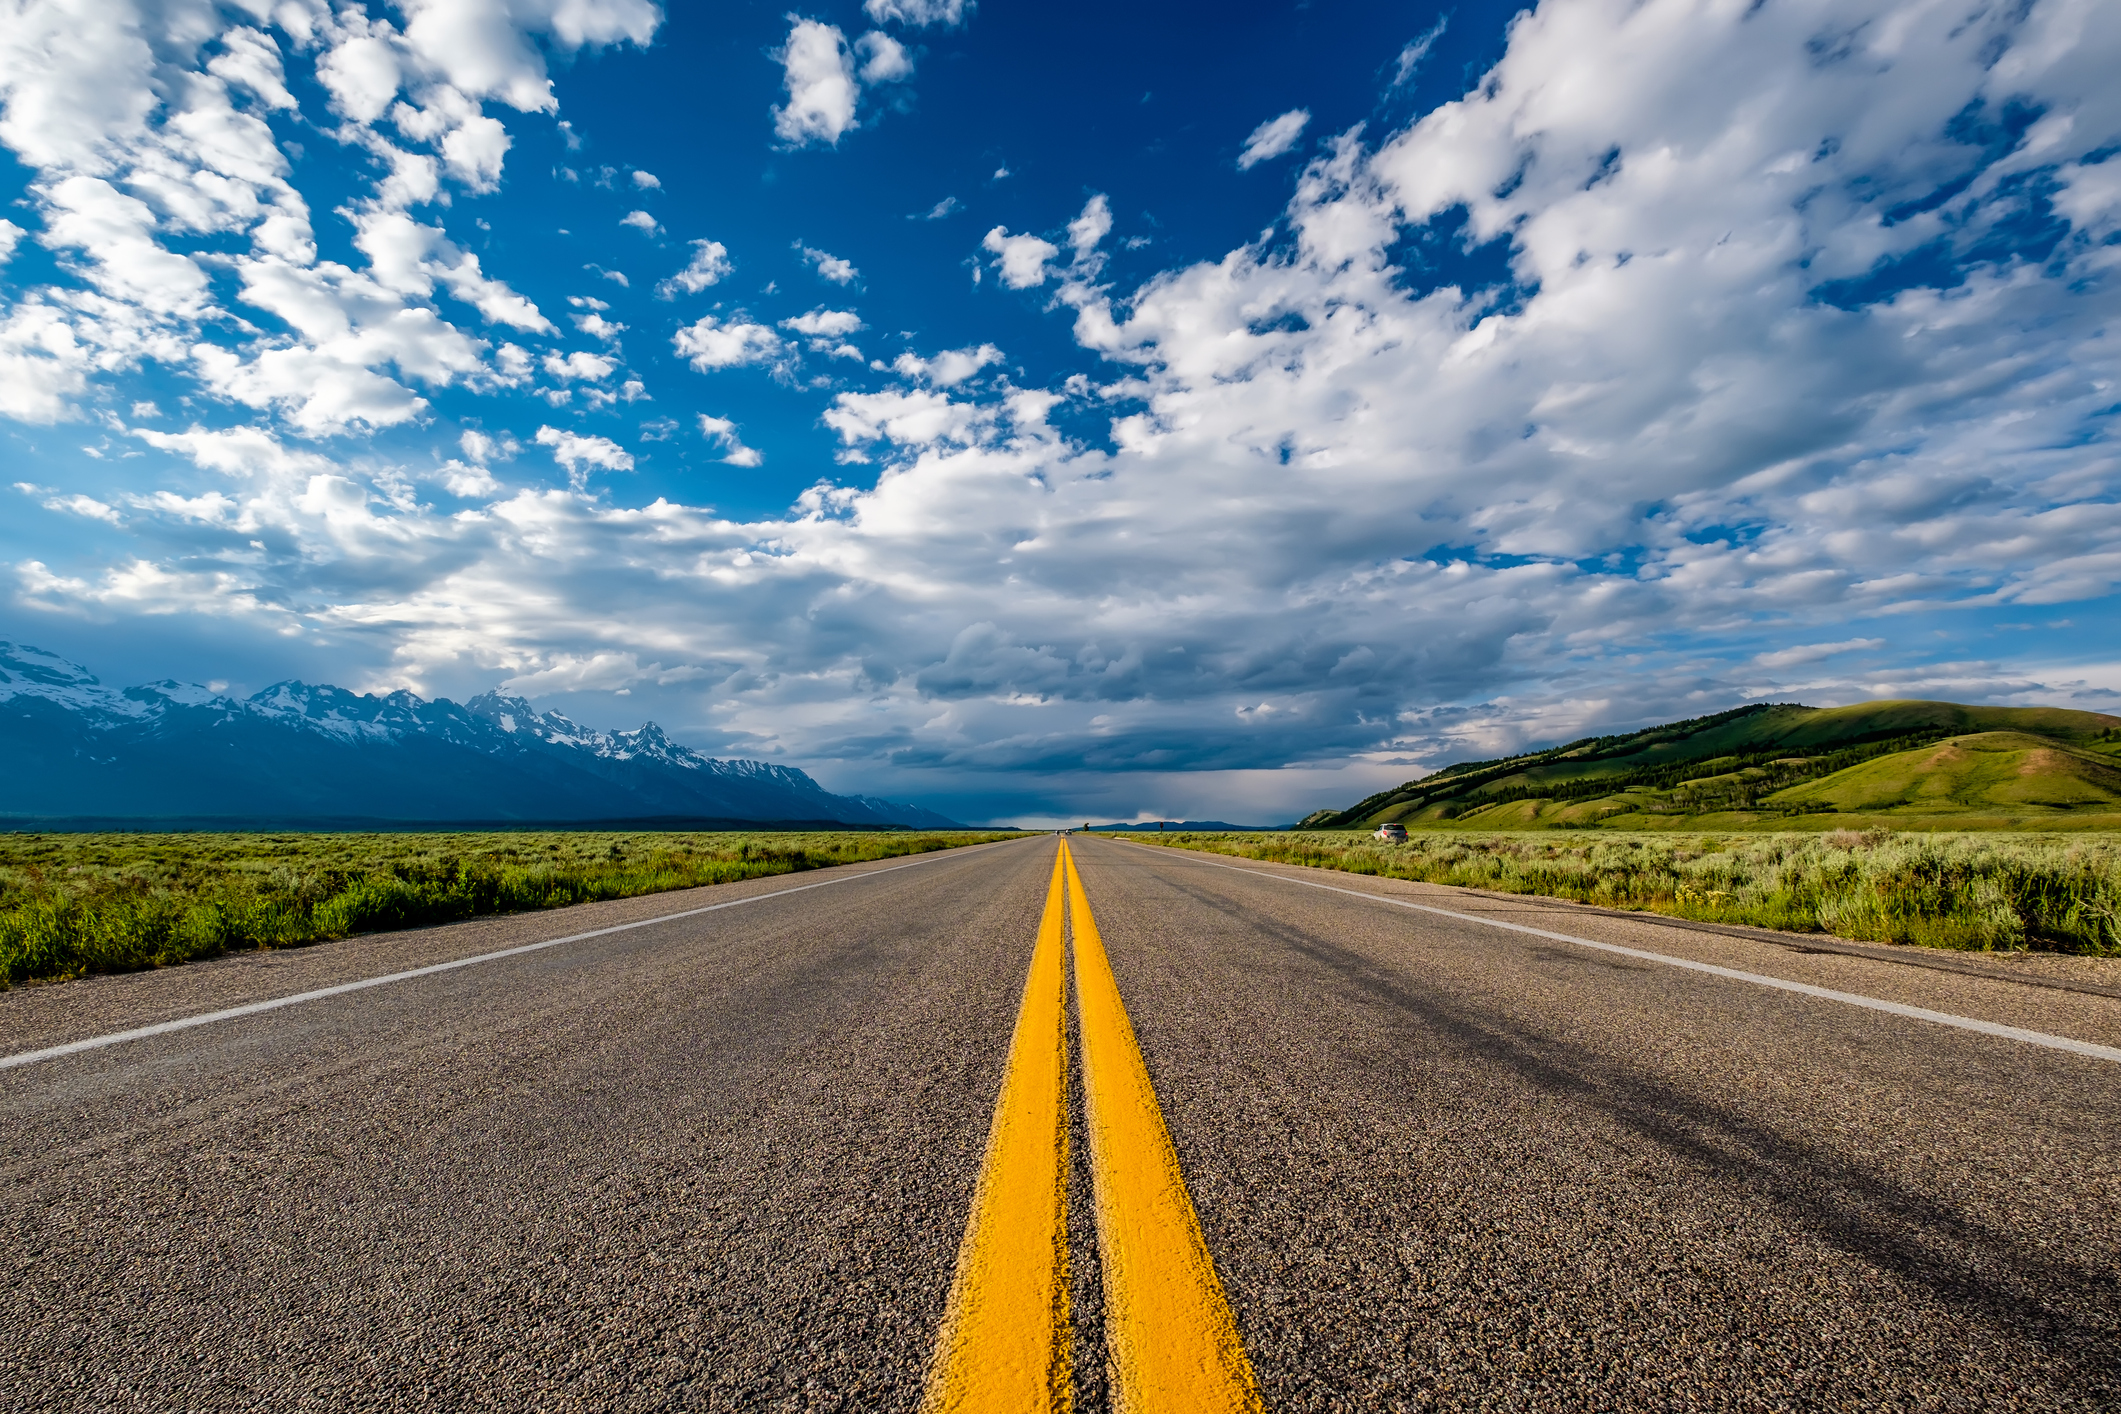 Open road with double yellow lines and blue sky.